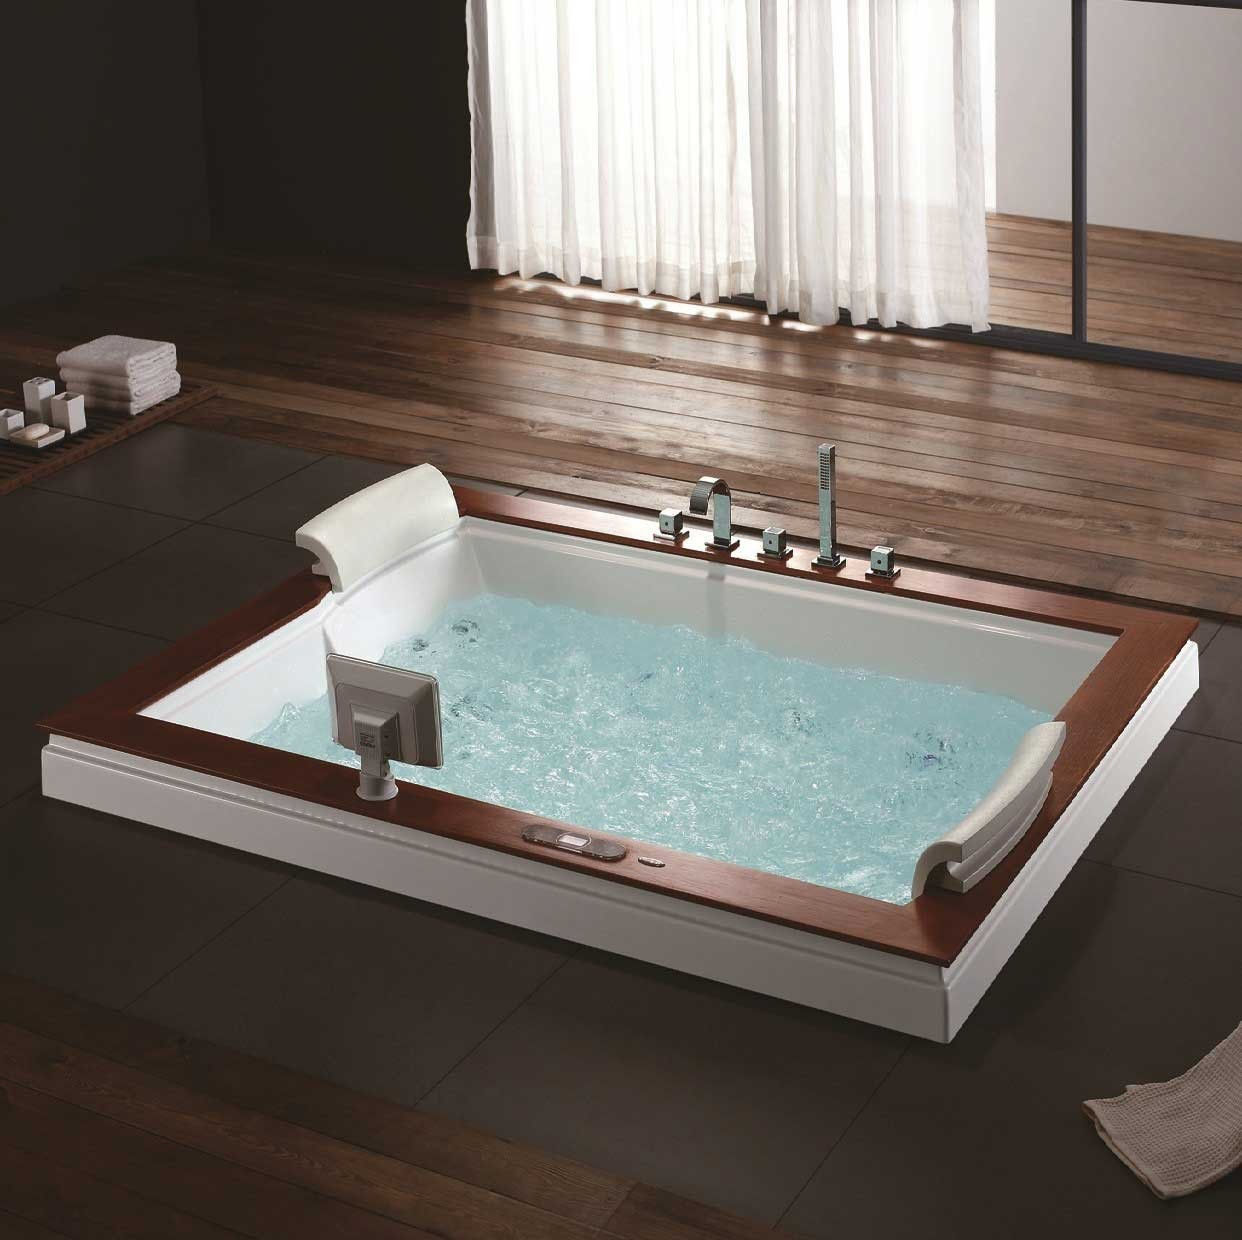 burlington luxury whirlpool tub - Jetted Tubs